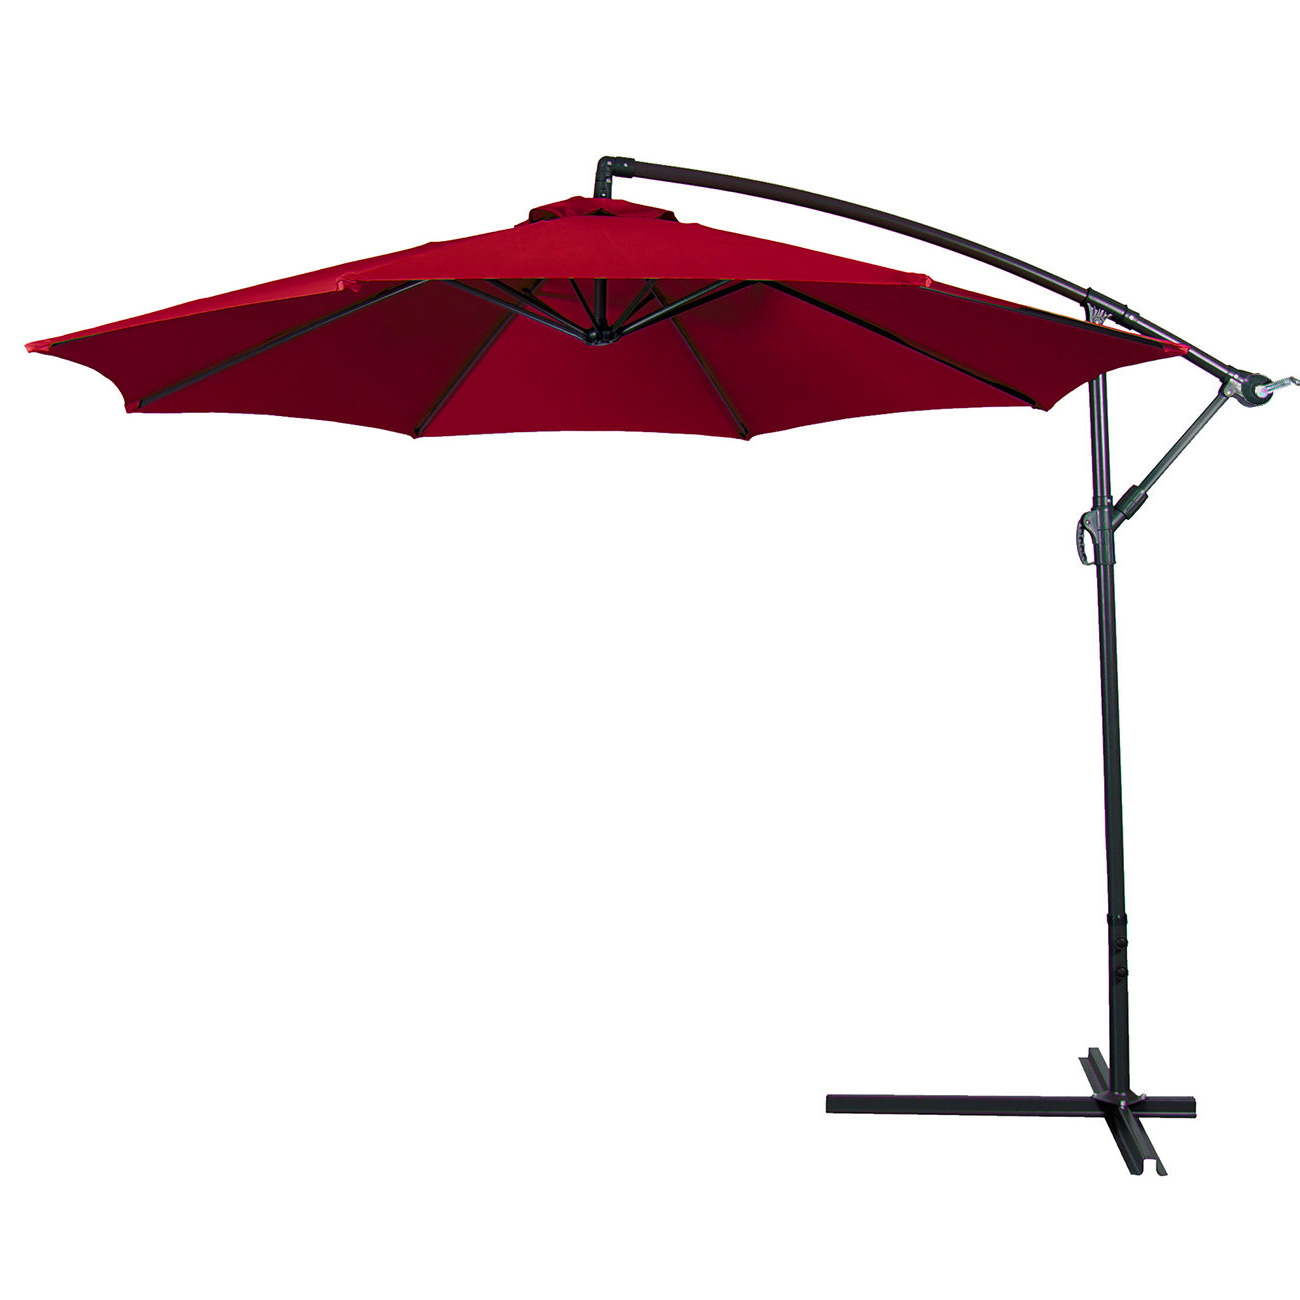 Newest Bormann Cantilever Umbrellas Within Bormann 10' Cantilever Umbrella (View 14 of 20)